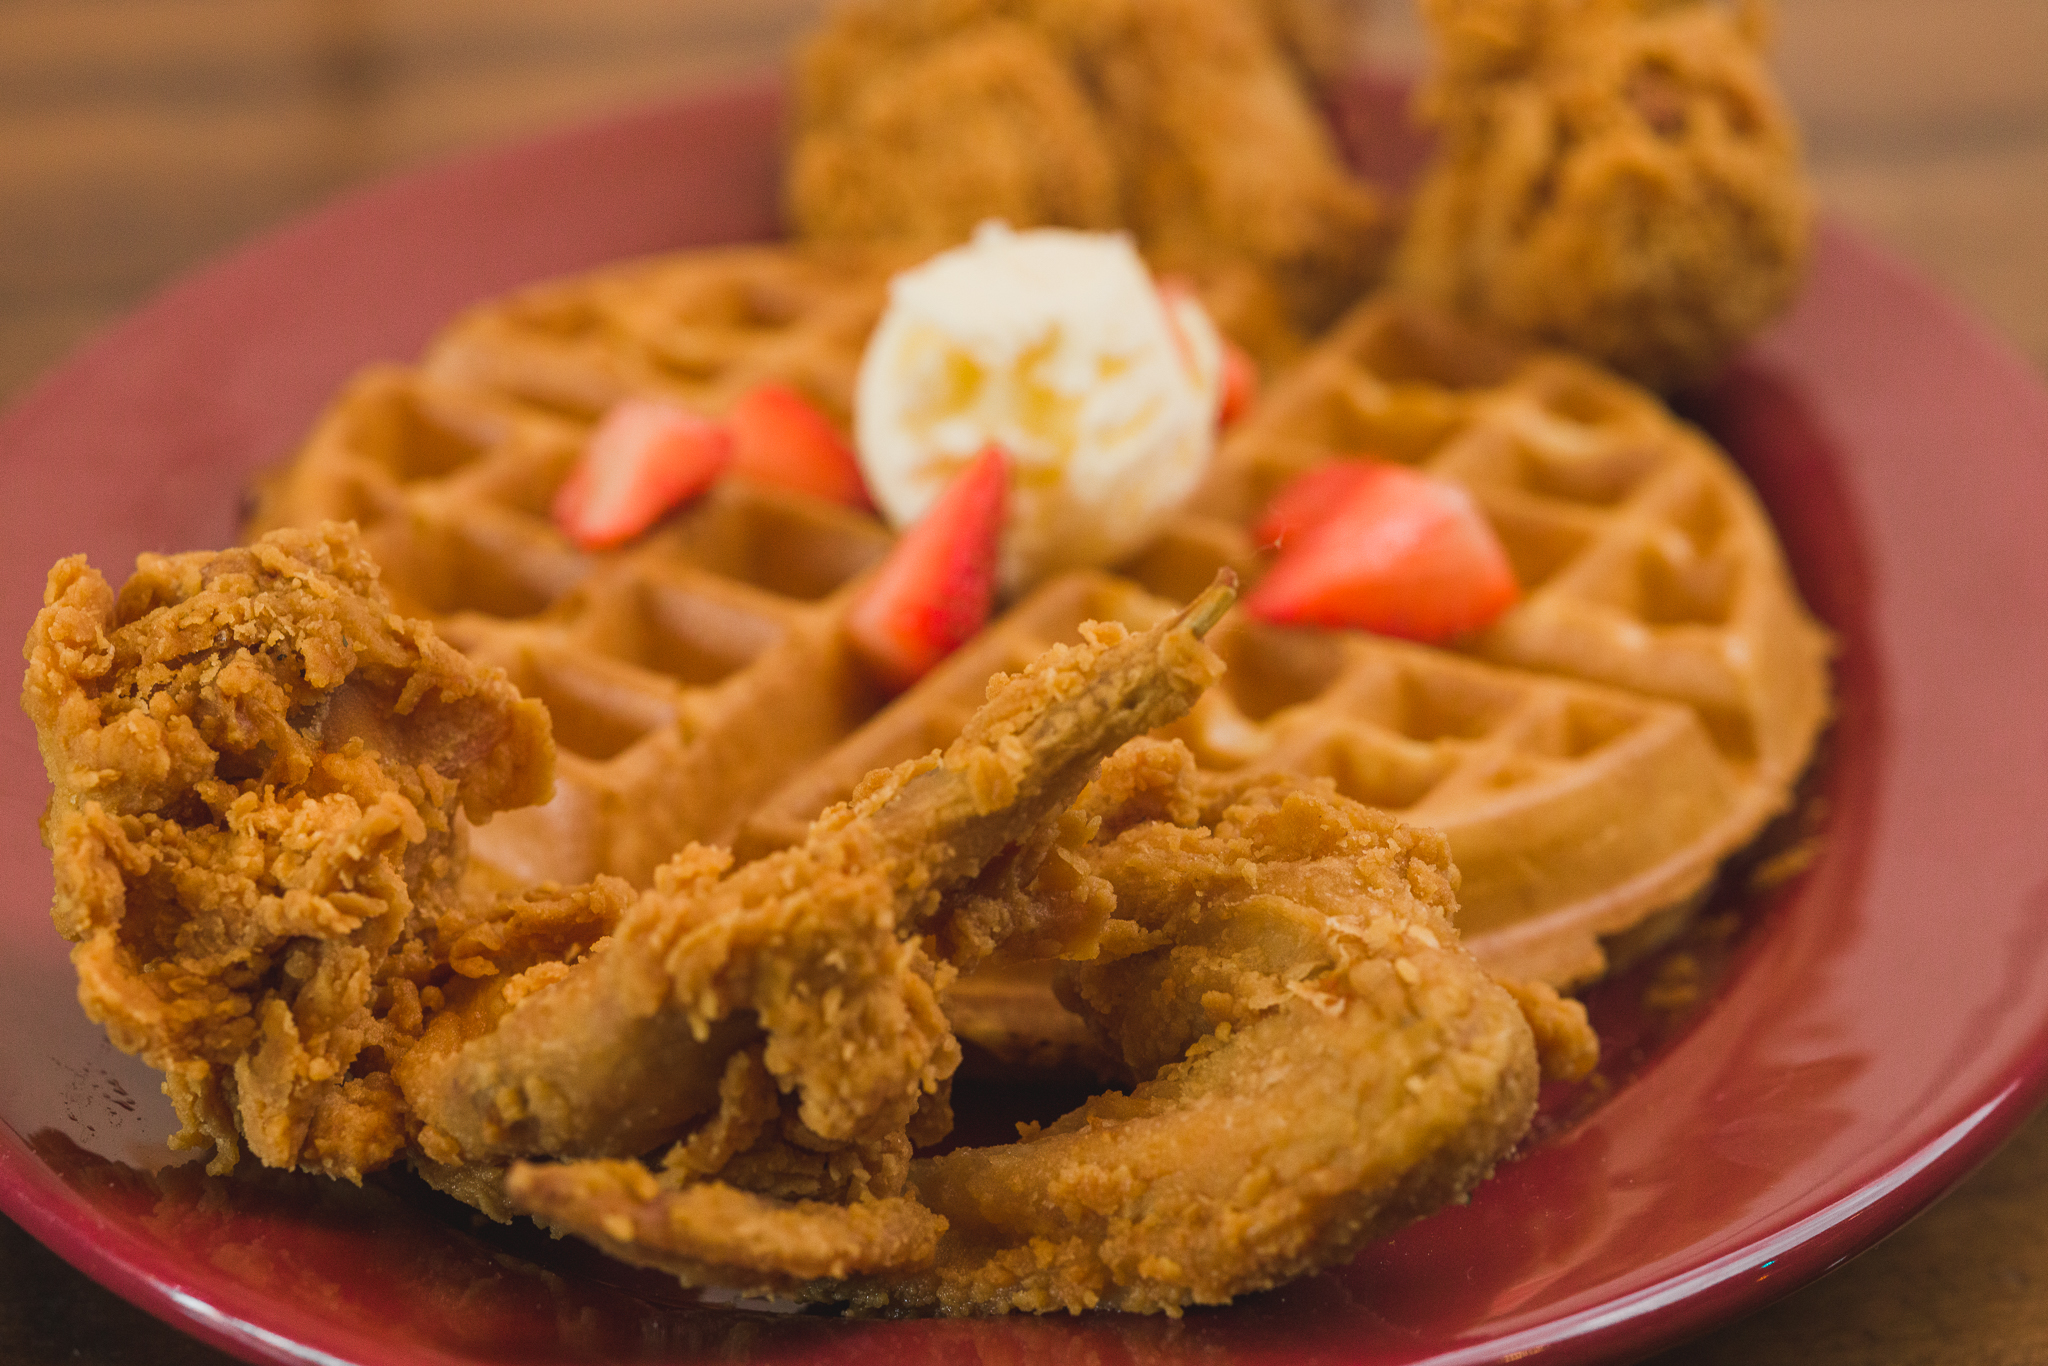 Chicken and waffles with strawberries and a pat of butter atop